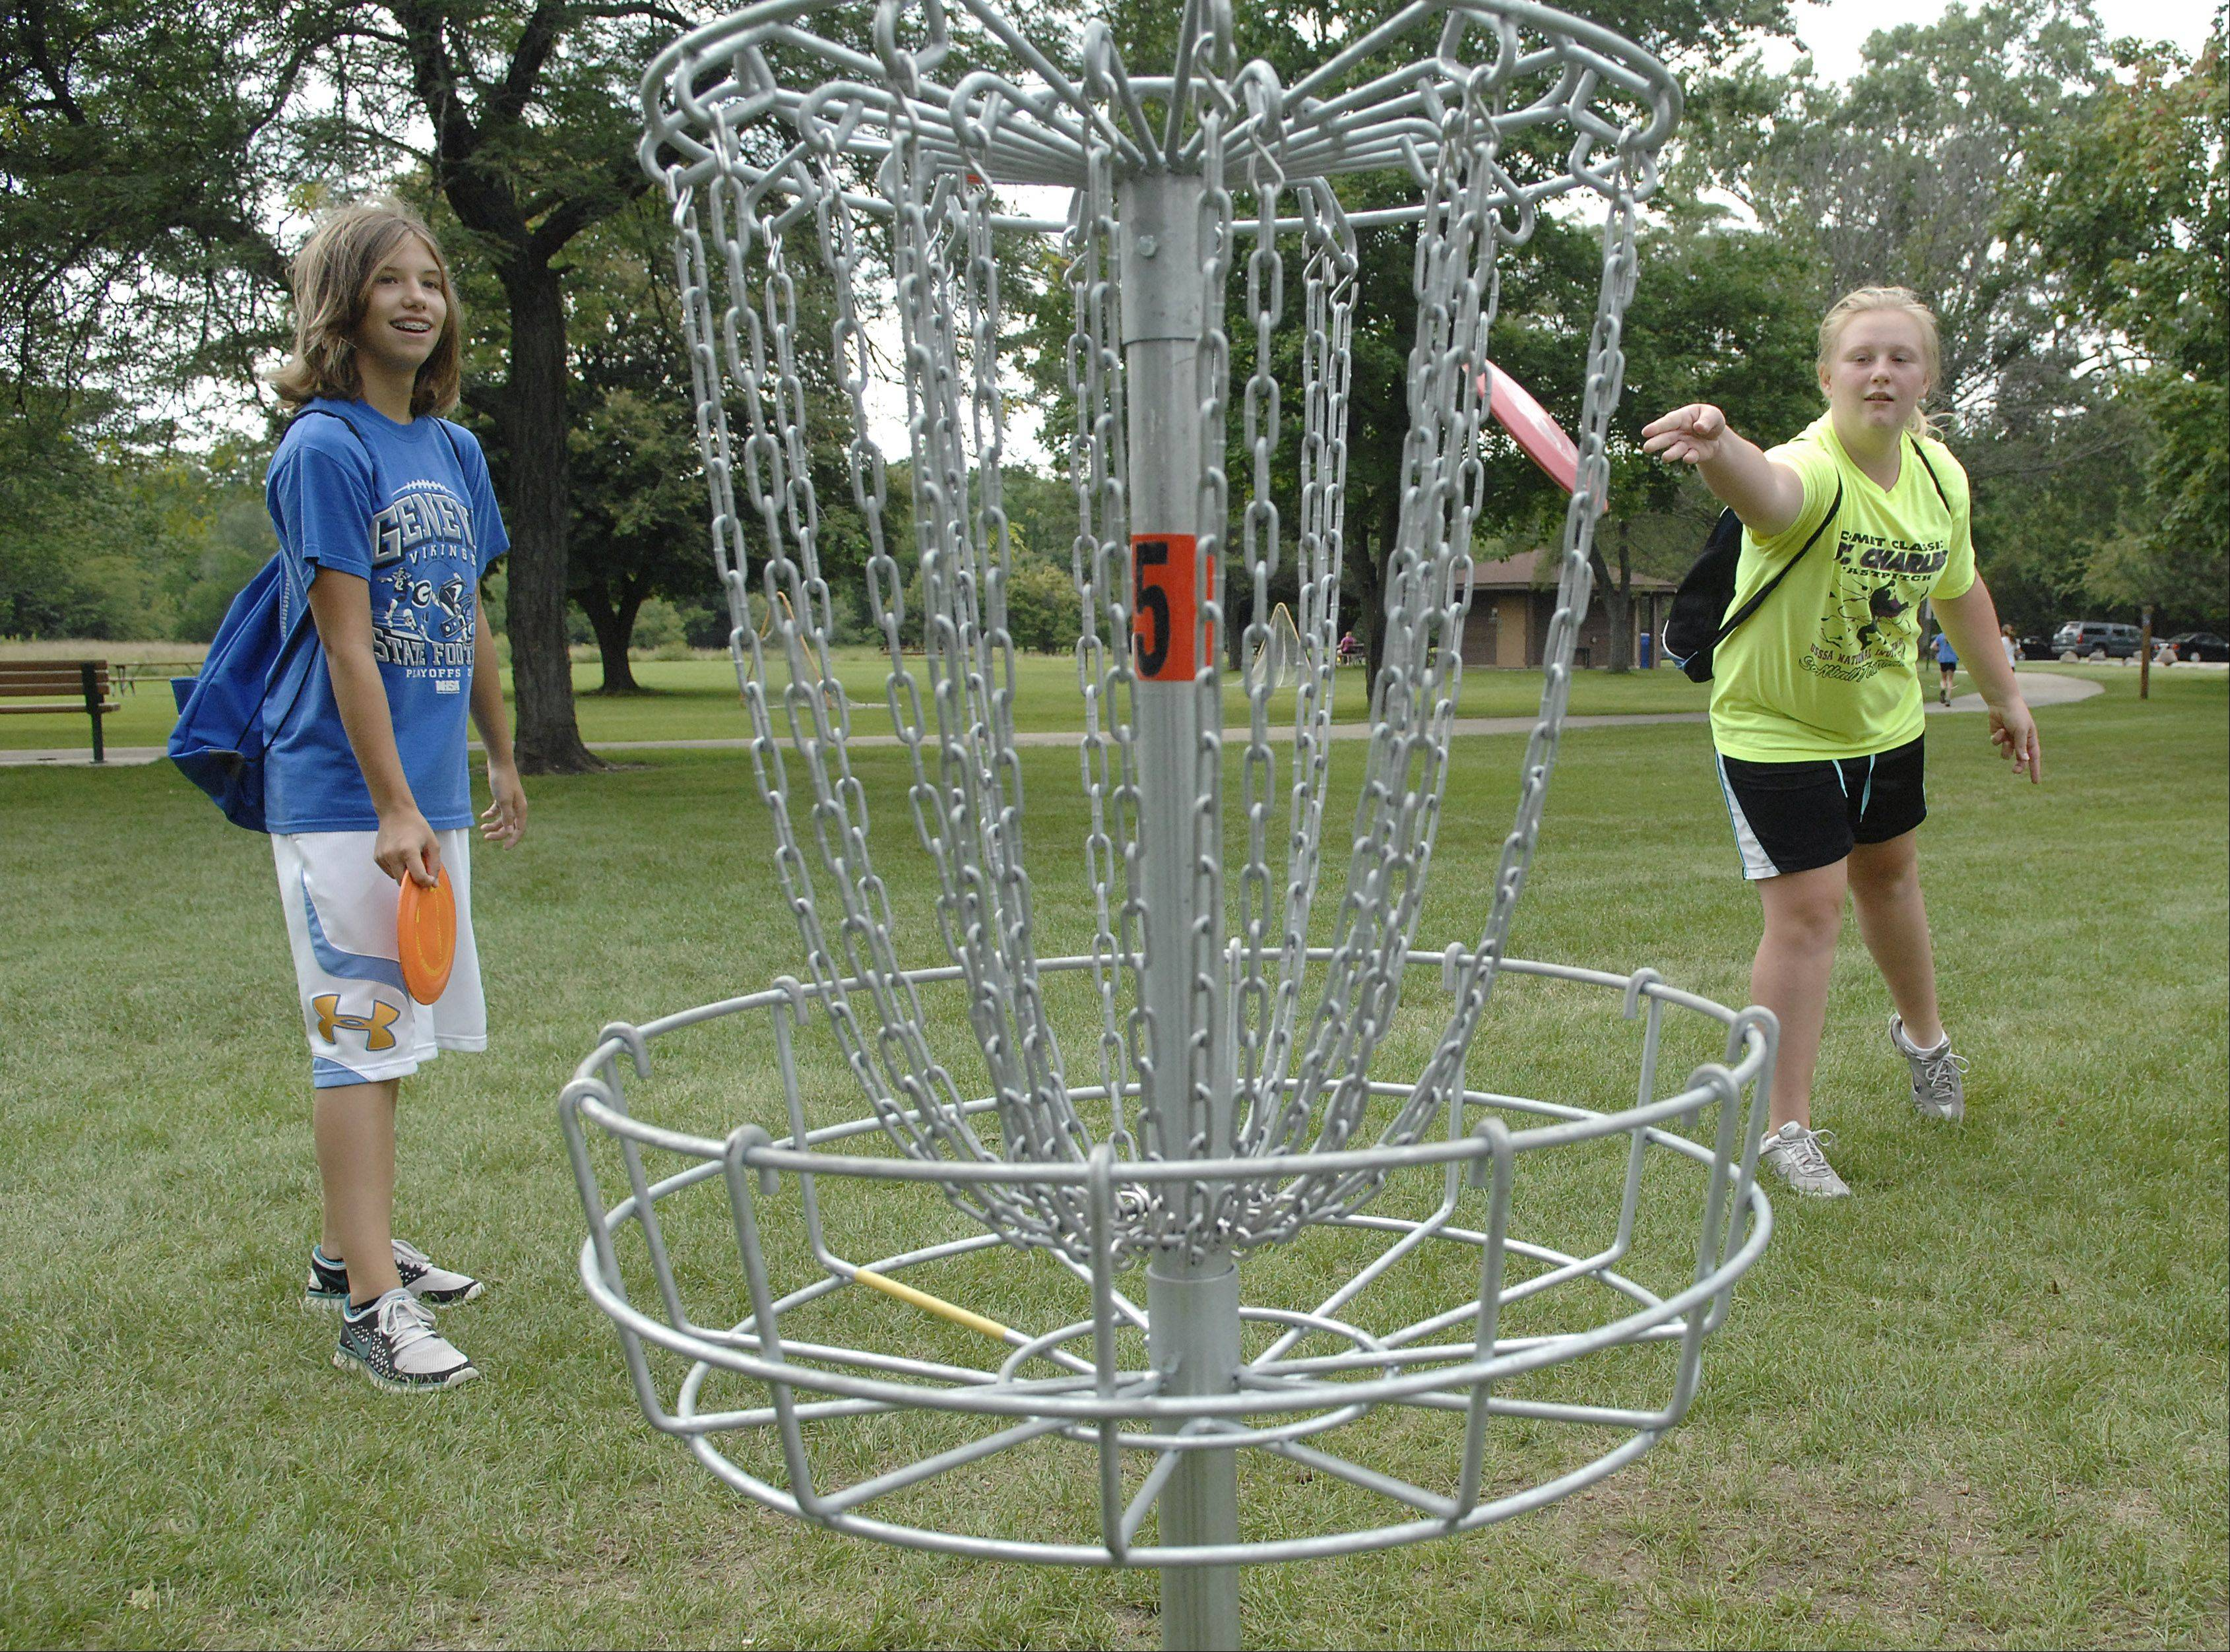 Elizabeth Ariss, 13, left, and Jennifer Cale, 14, both of Geneva have been coming to the new disc golf course at Wheeler Park in Geneva about four times a week the past two weeks.